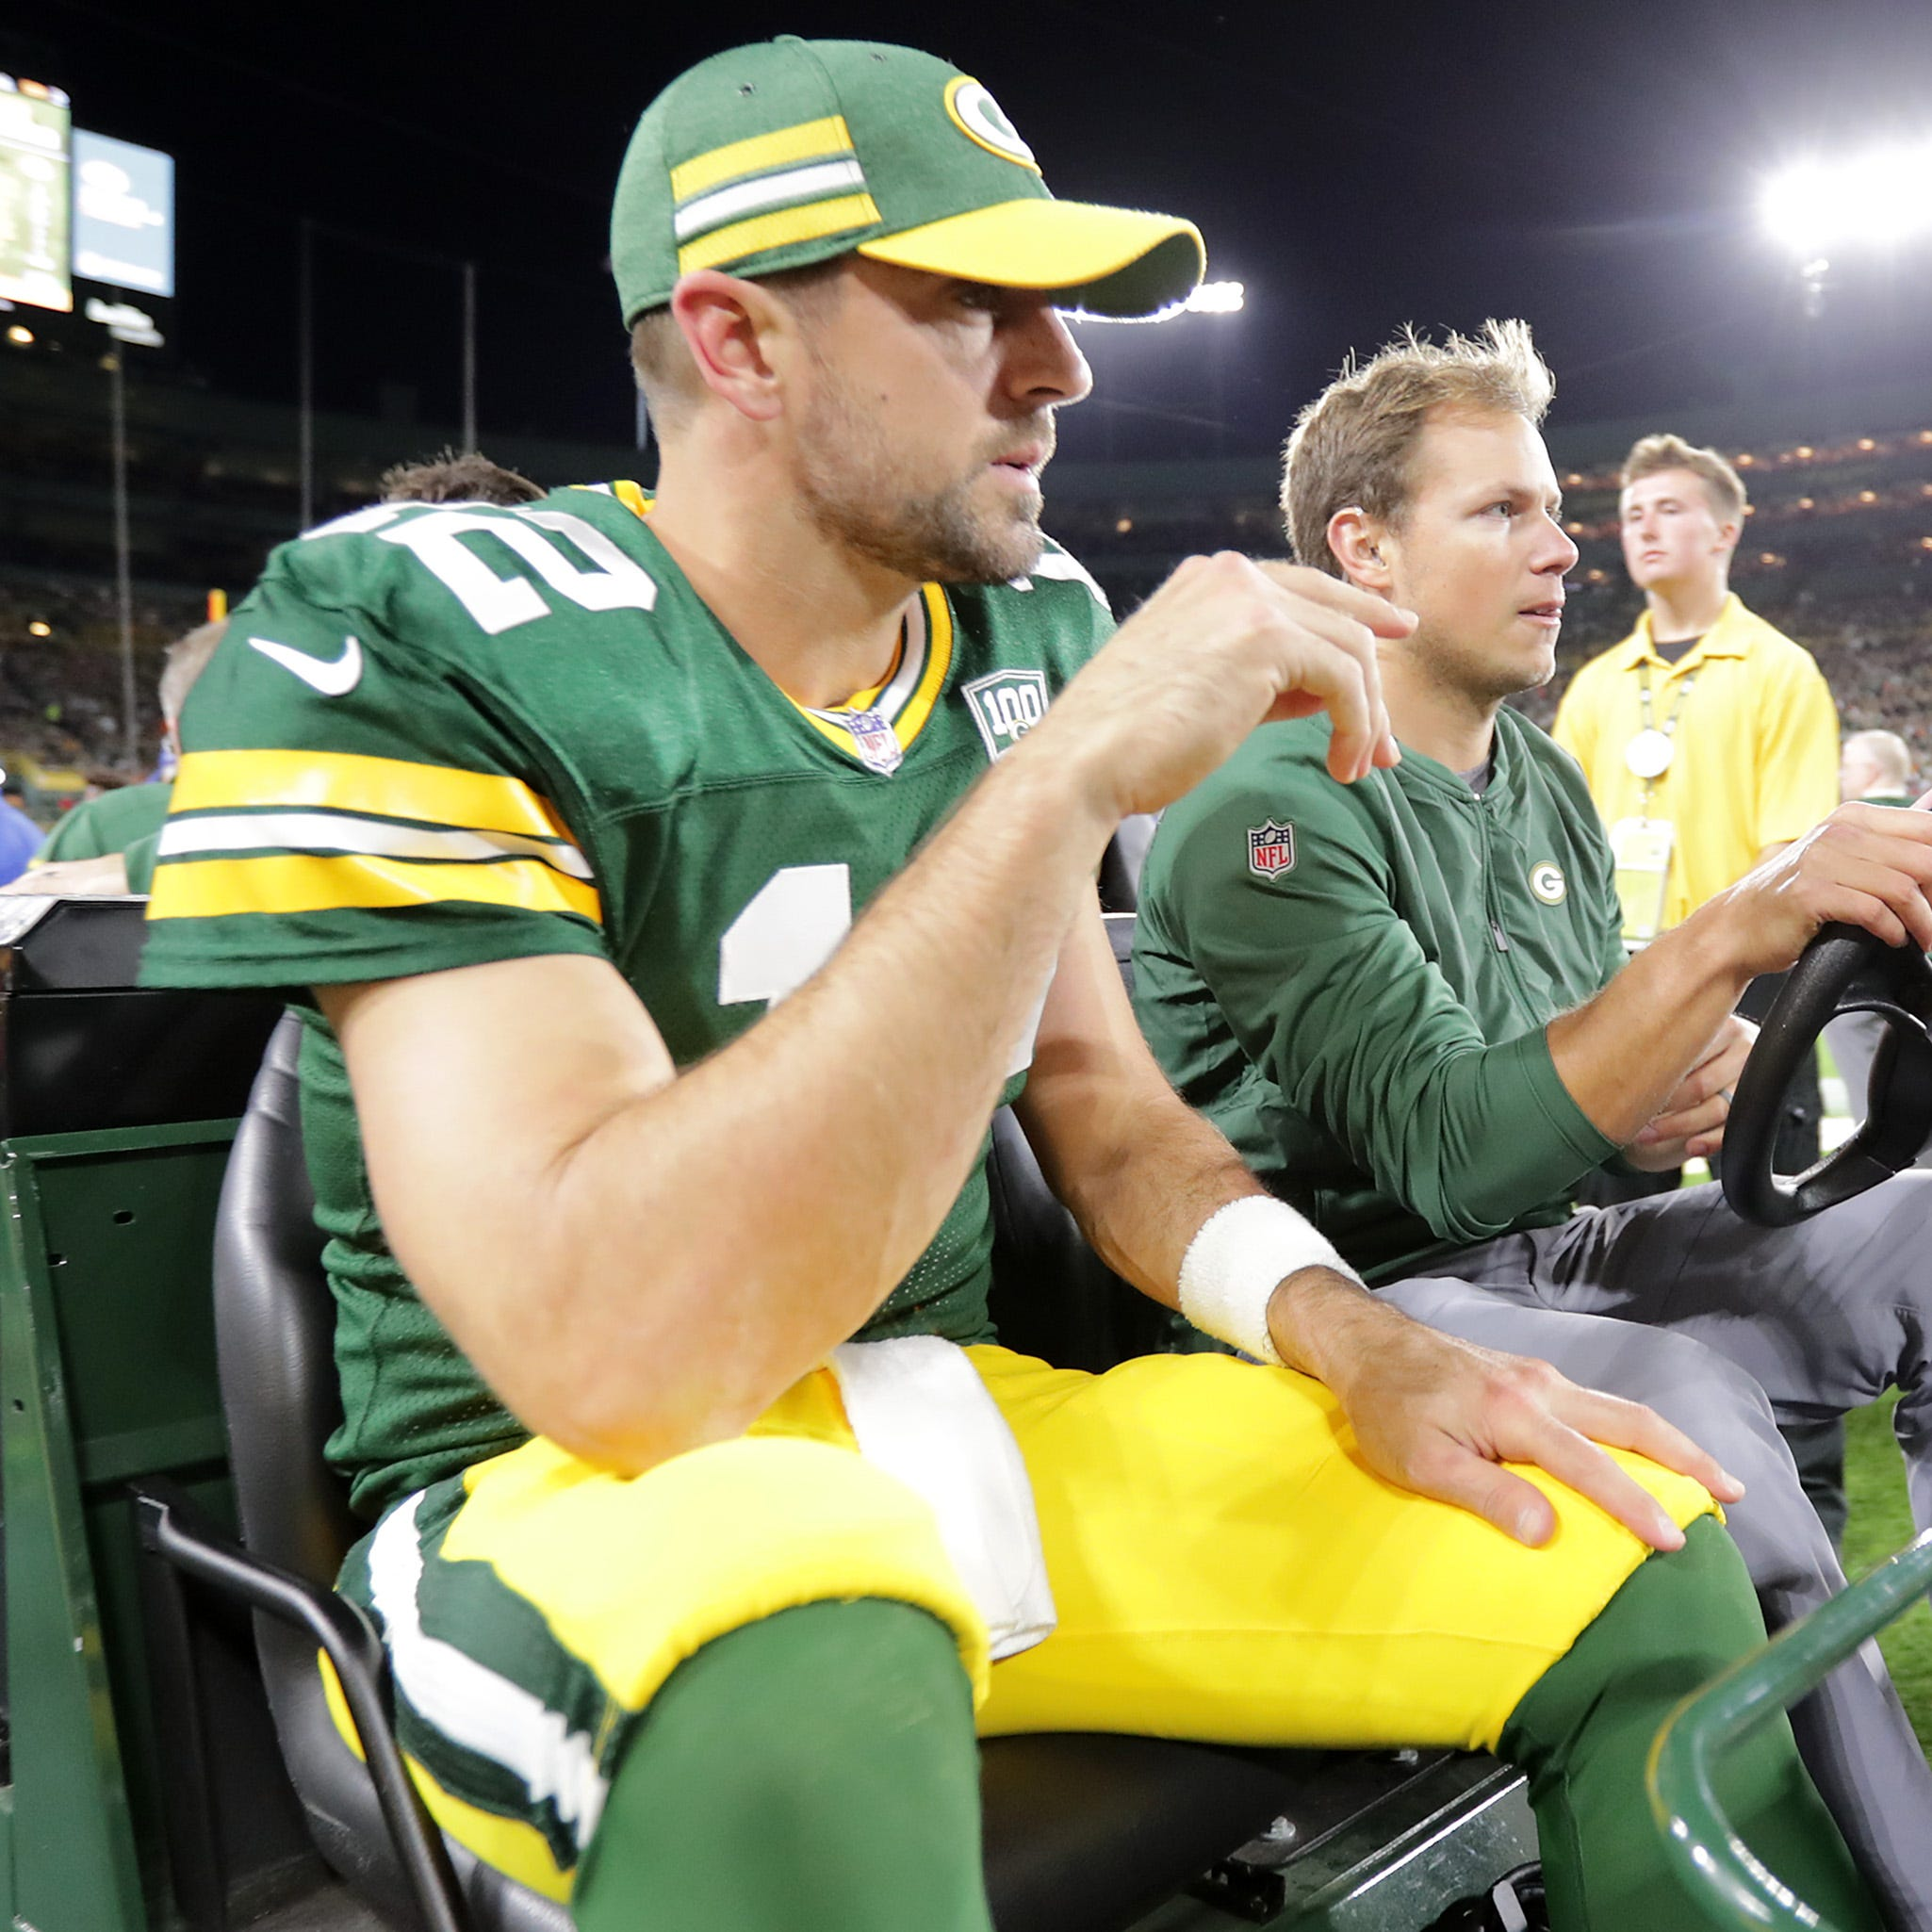 Packers QB Aaron Rodgers reveals he played 2018 season on fractured leg